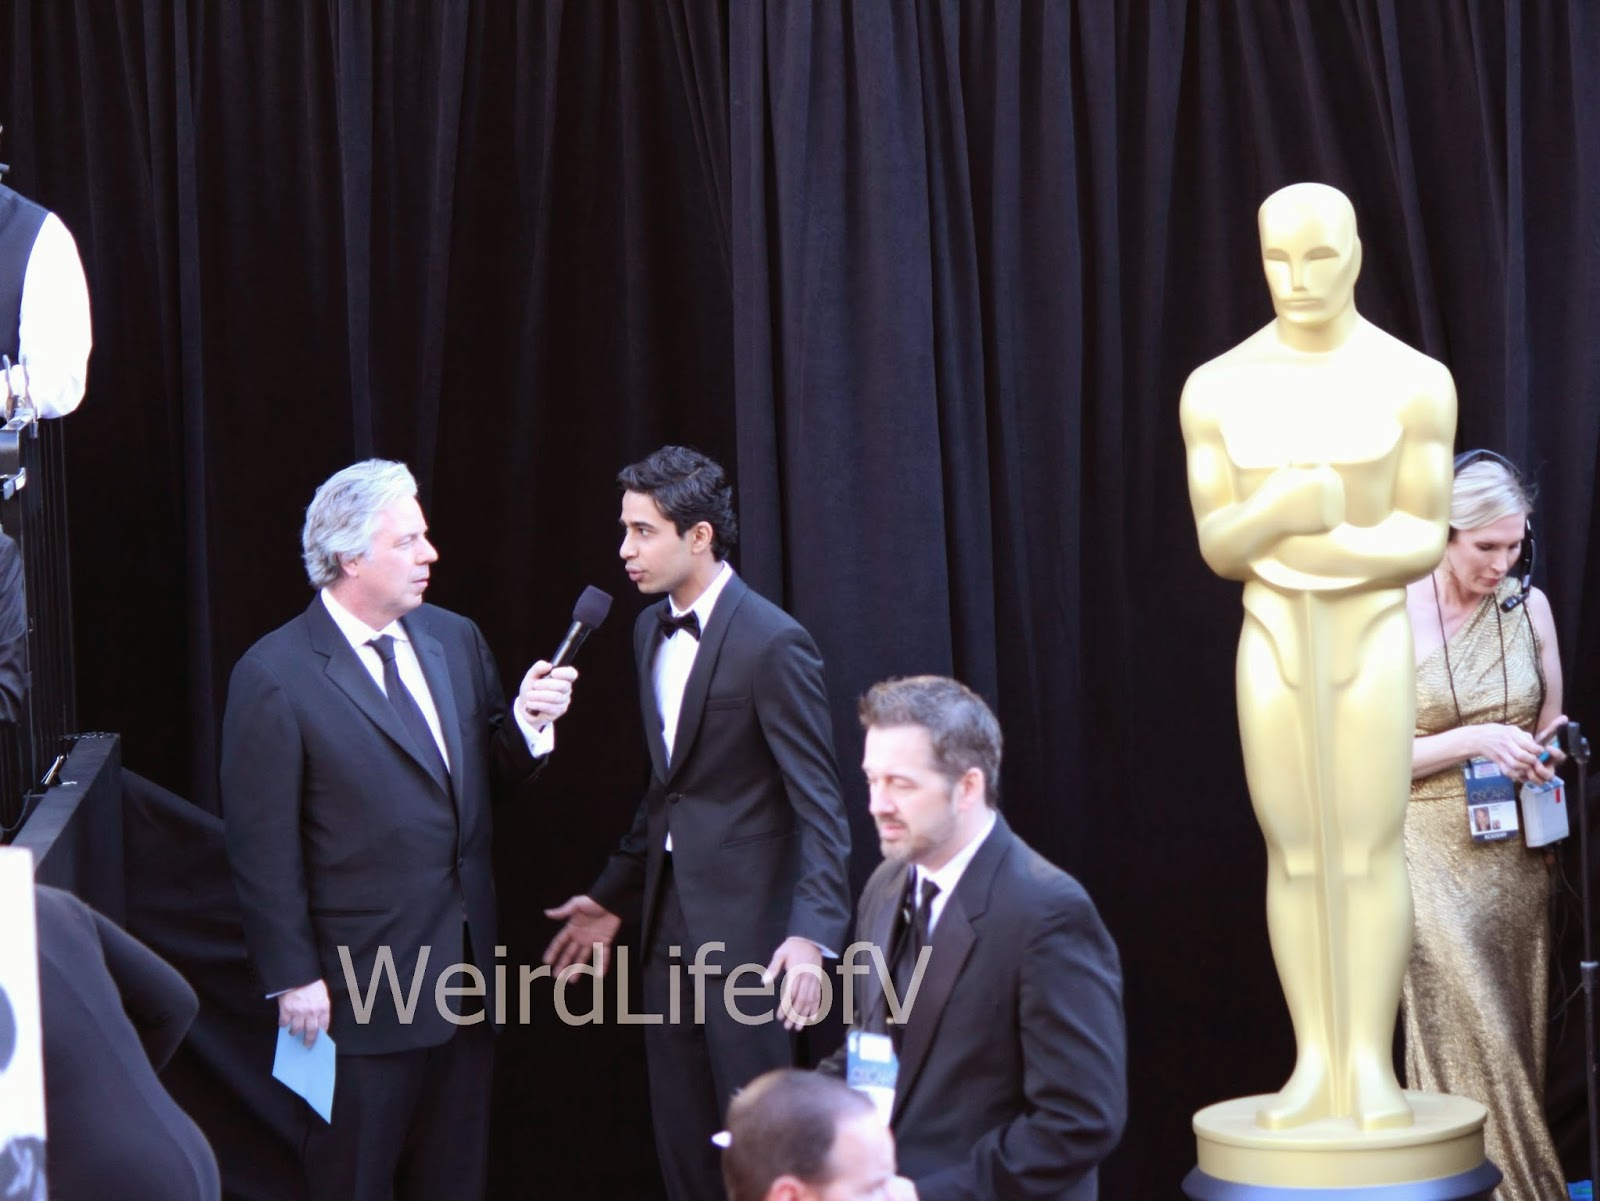 Suraj Sharma being interviewed by Chris Connelly at the 2013 Academy Awards